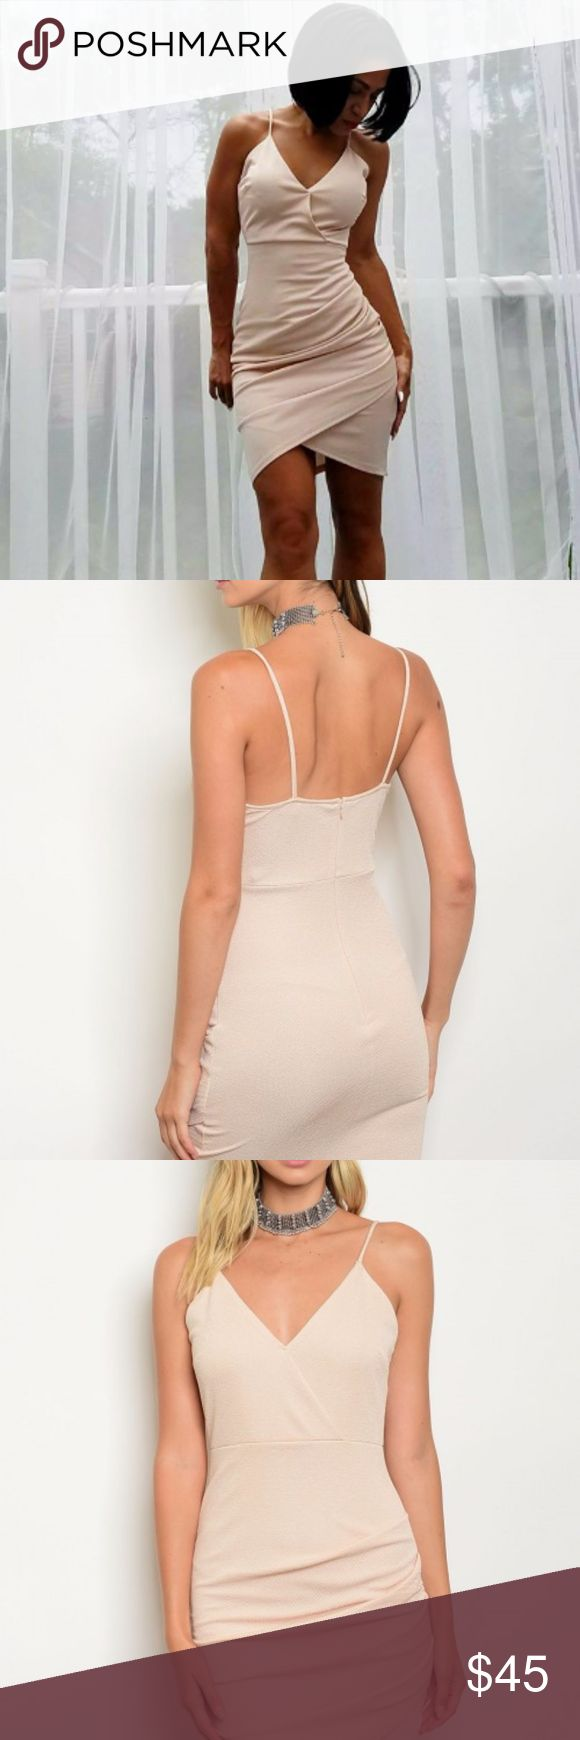 Nude Ruched Bodycon Dress We got your date night covered in this sexy figure flattering ruched bodycon dress in a timesless neutral shade. Gathered ruching flatters and accentuates curves.  - 95% Polyester | 5% Spandex - Made in the USA Dresses Mini